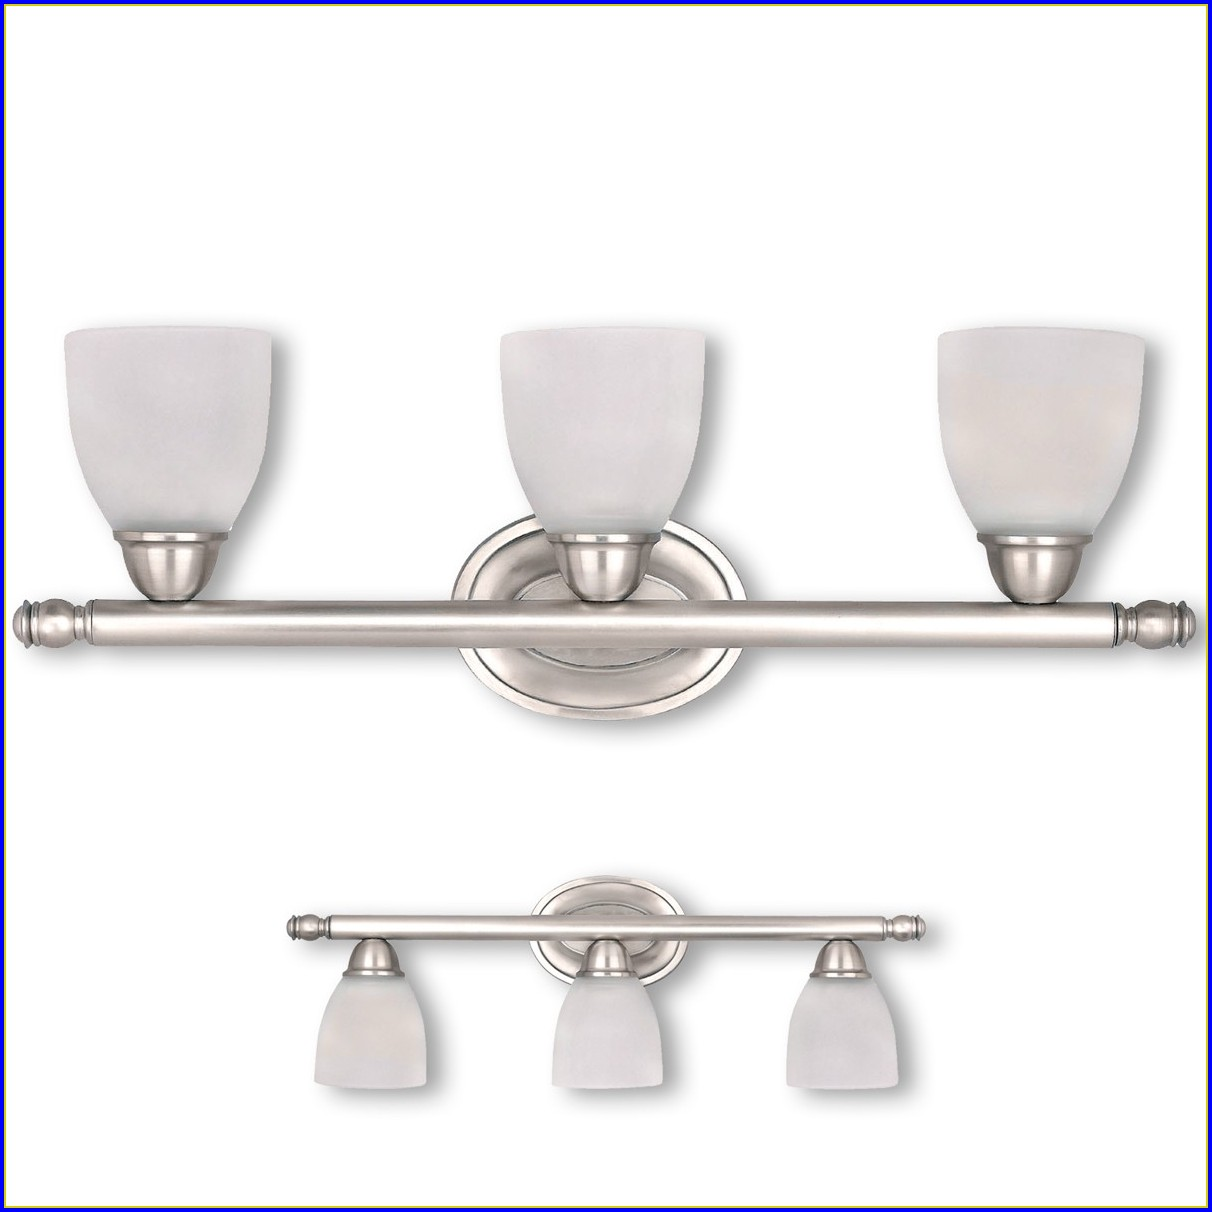 Bathroom Light Fixtures Brushed Nickel Ceiling Mount